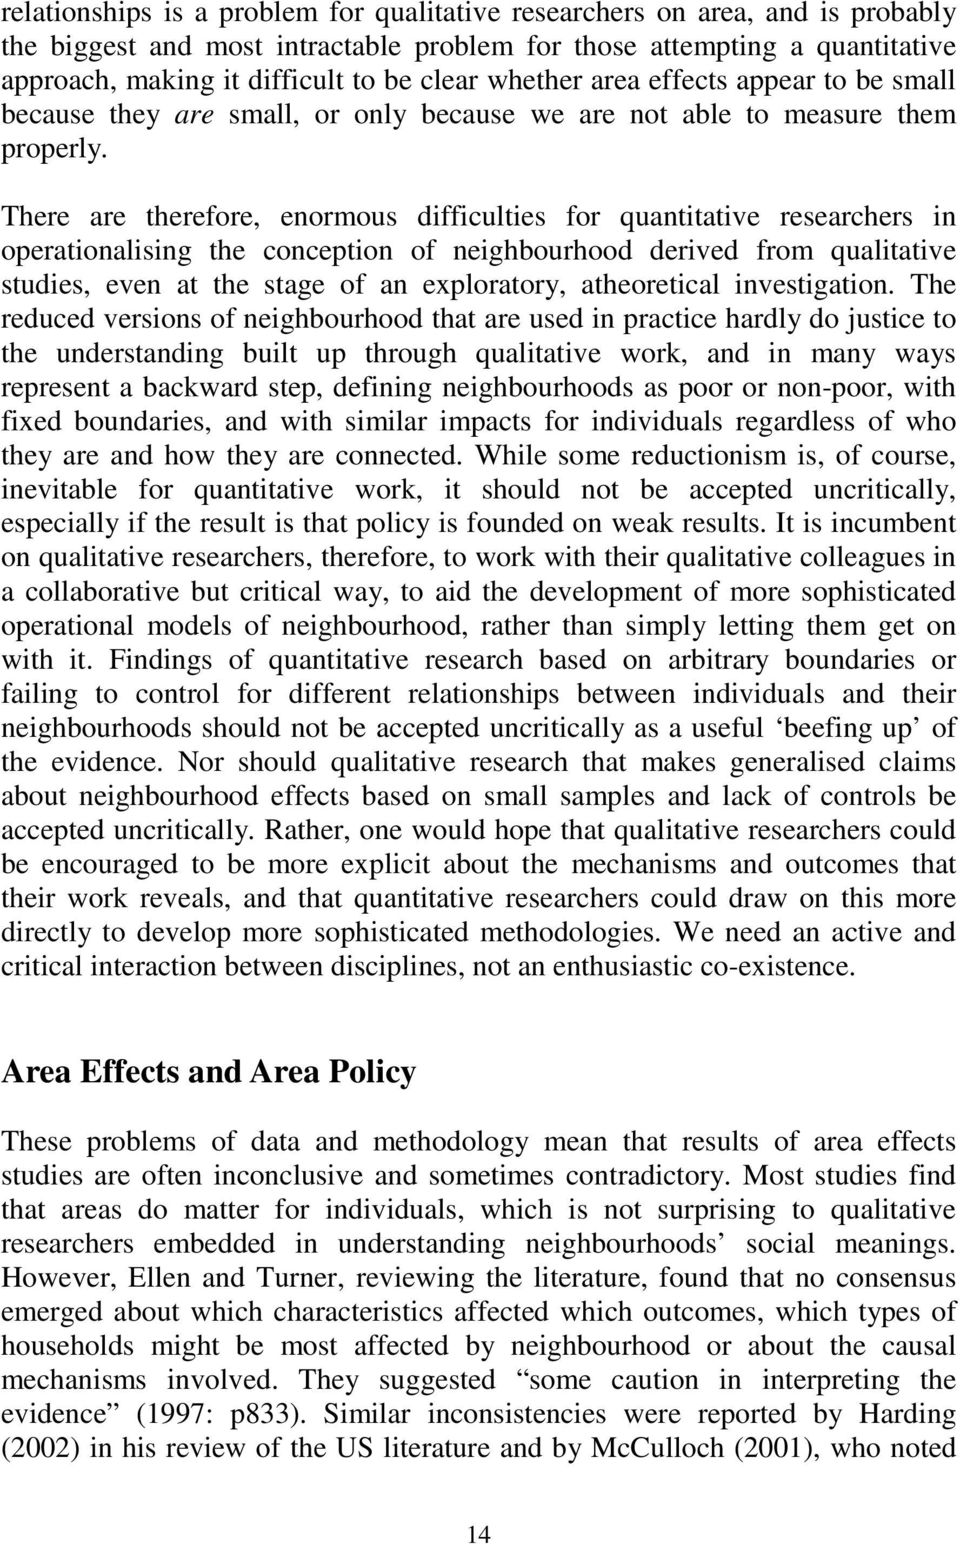 There are therefore, enormous difficulties for quantitative researchers in operationalising the conception of neighbourhood derived from qualitative studies, even at the stage of an exploratory,